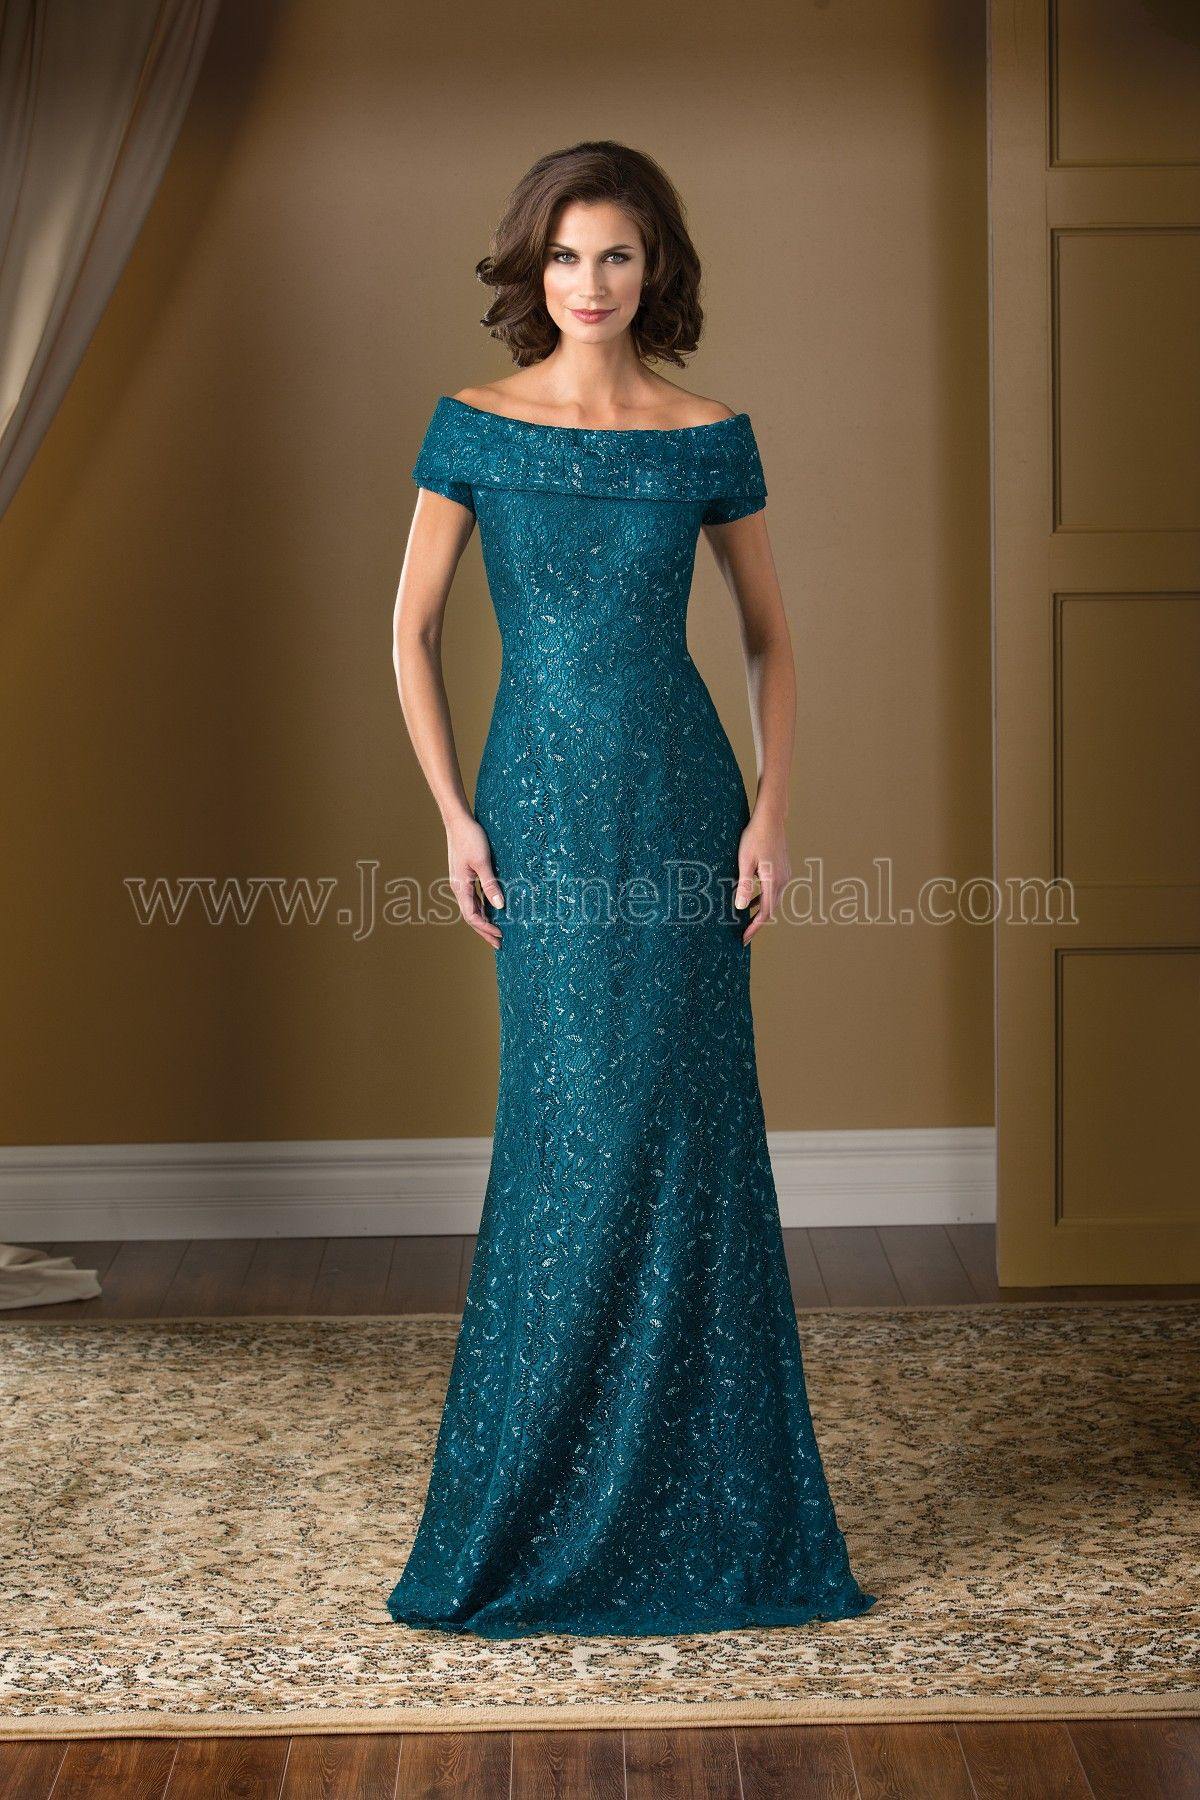 Couture Mother of the Bride Dress